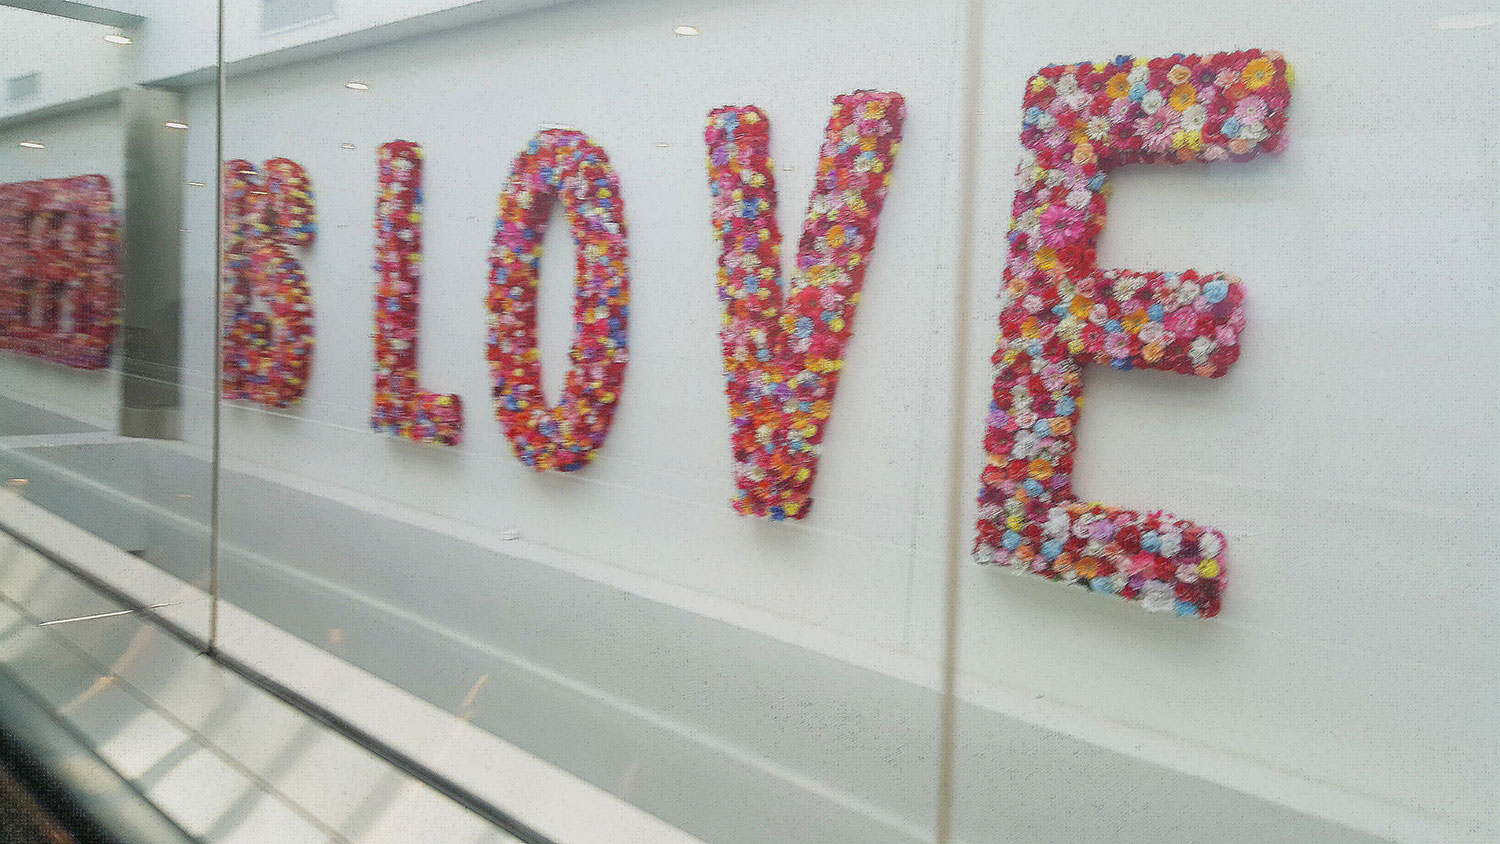 The word 'Love' spelled out in flowers